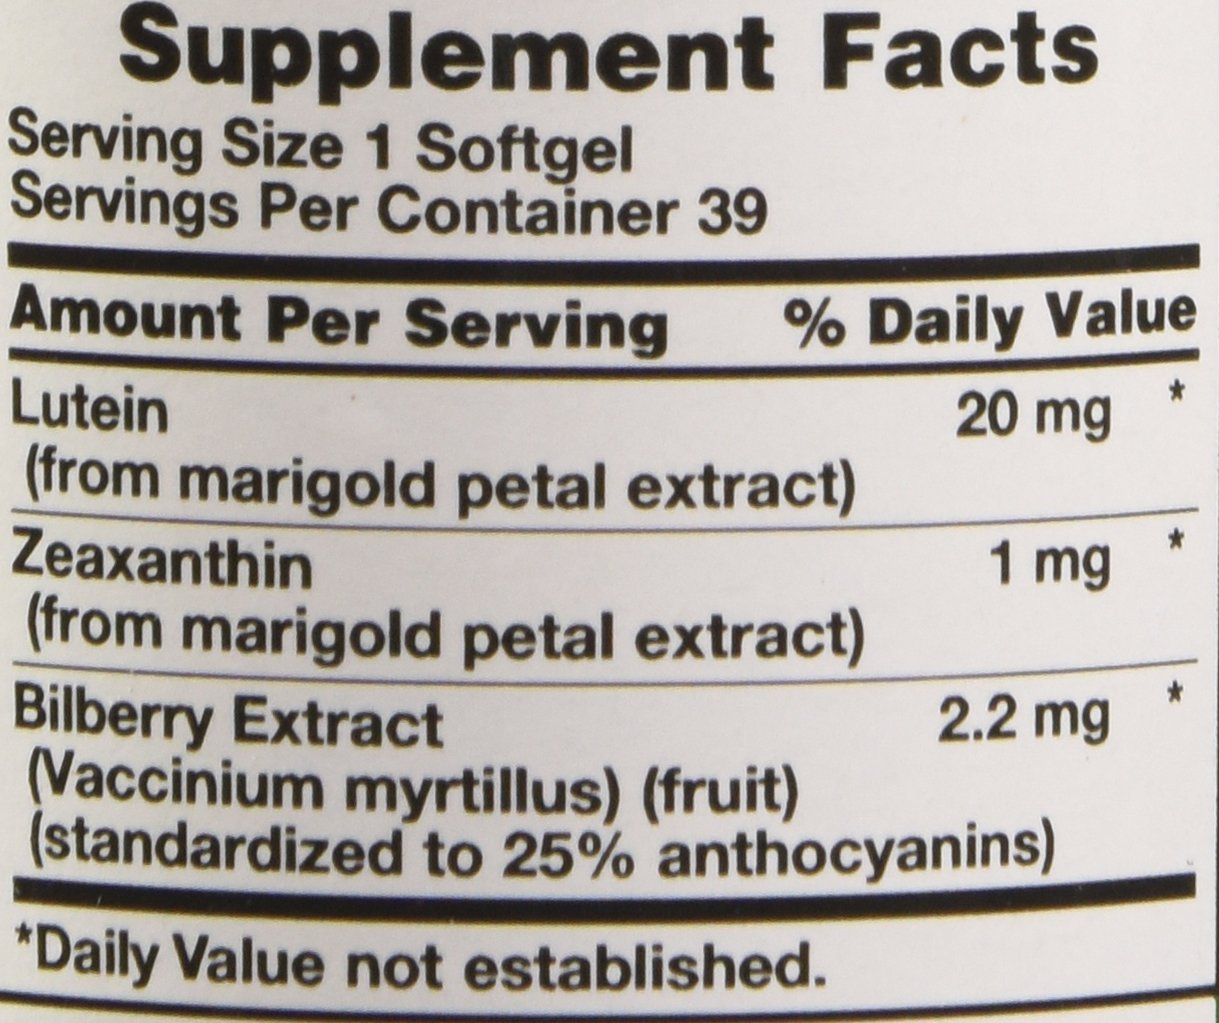 Nature's Truth Lutein 20 mg Plus Zeaxanthin and Bilberry Capsules, 39 Count by Nature's Truth (Image #3)